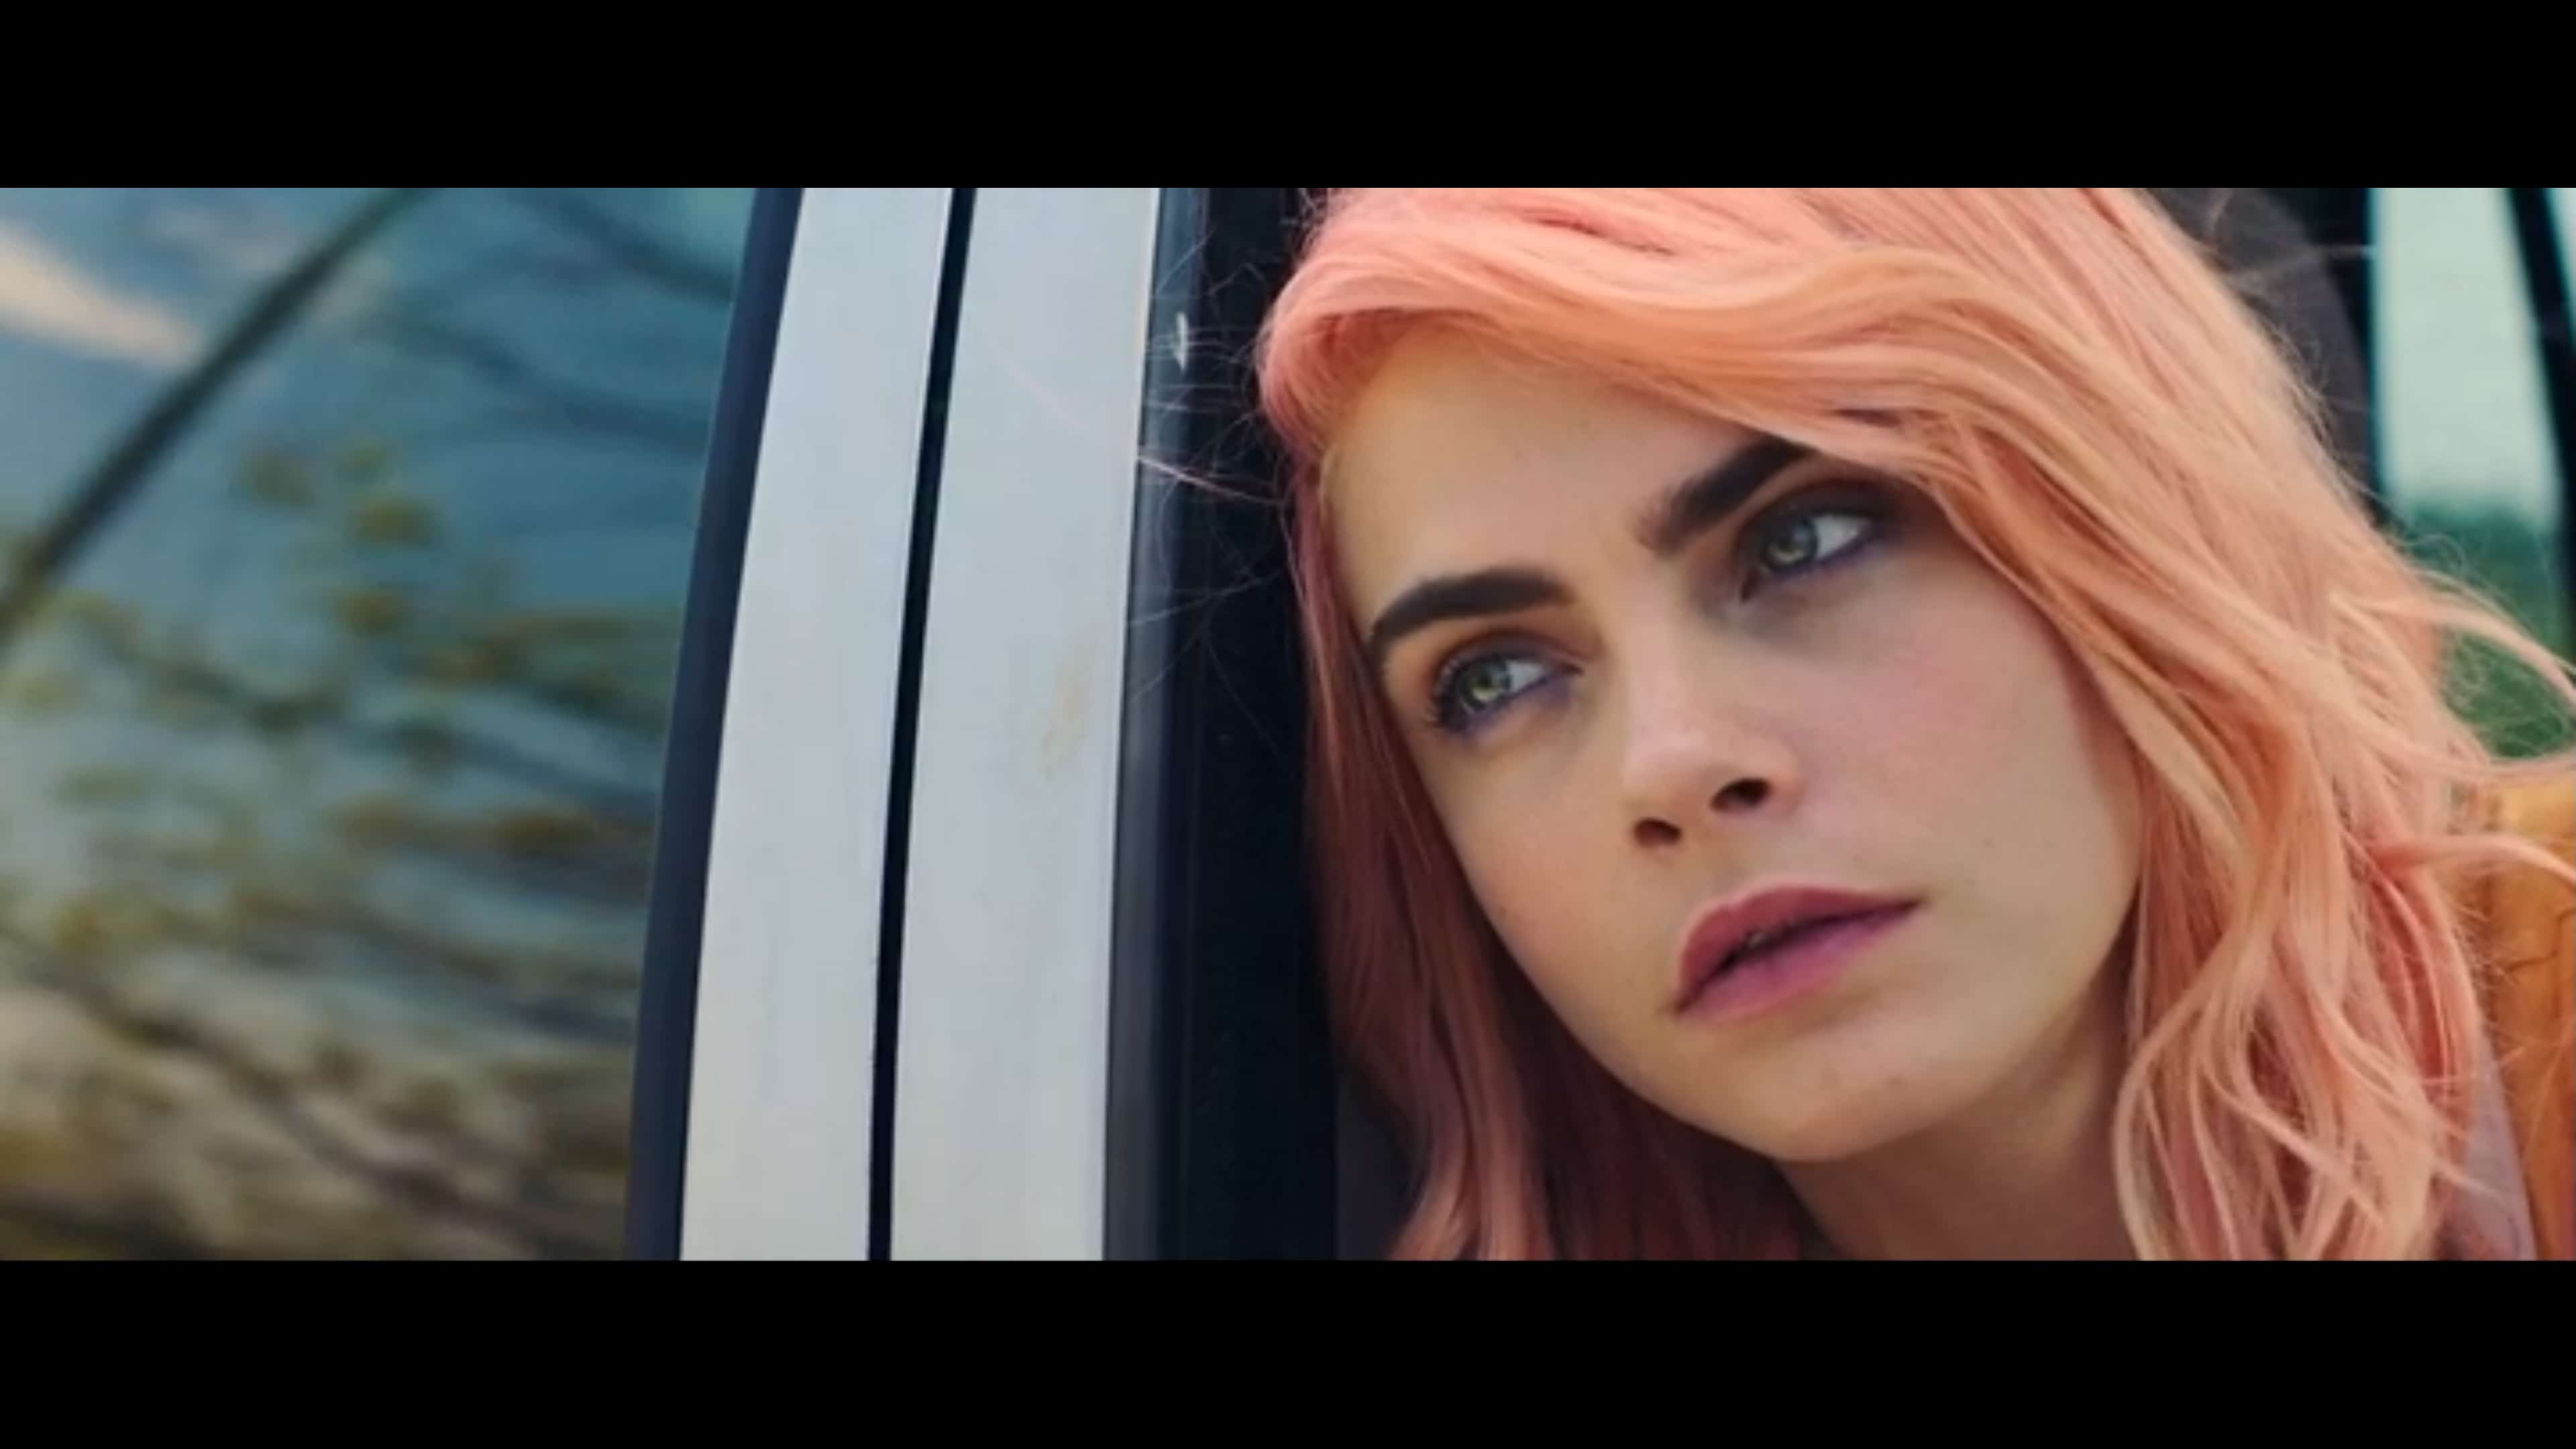 Isabelle (Cara Delevingne) looking out a window